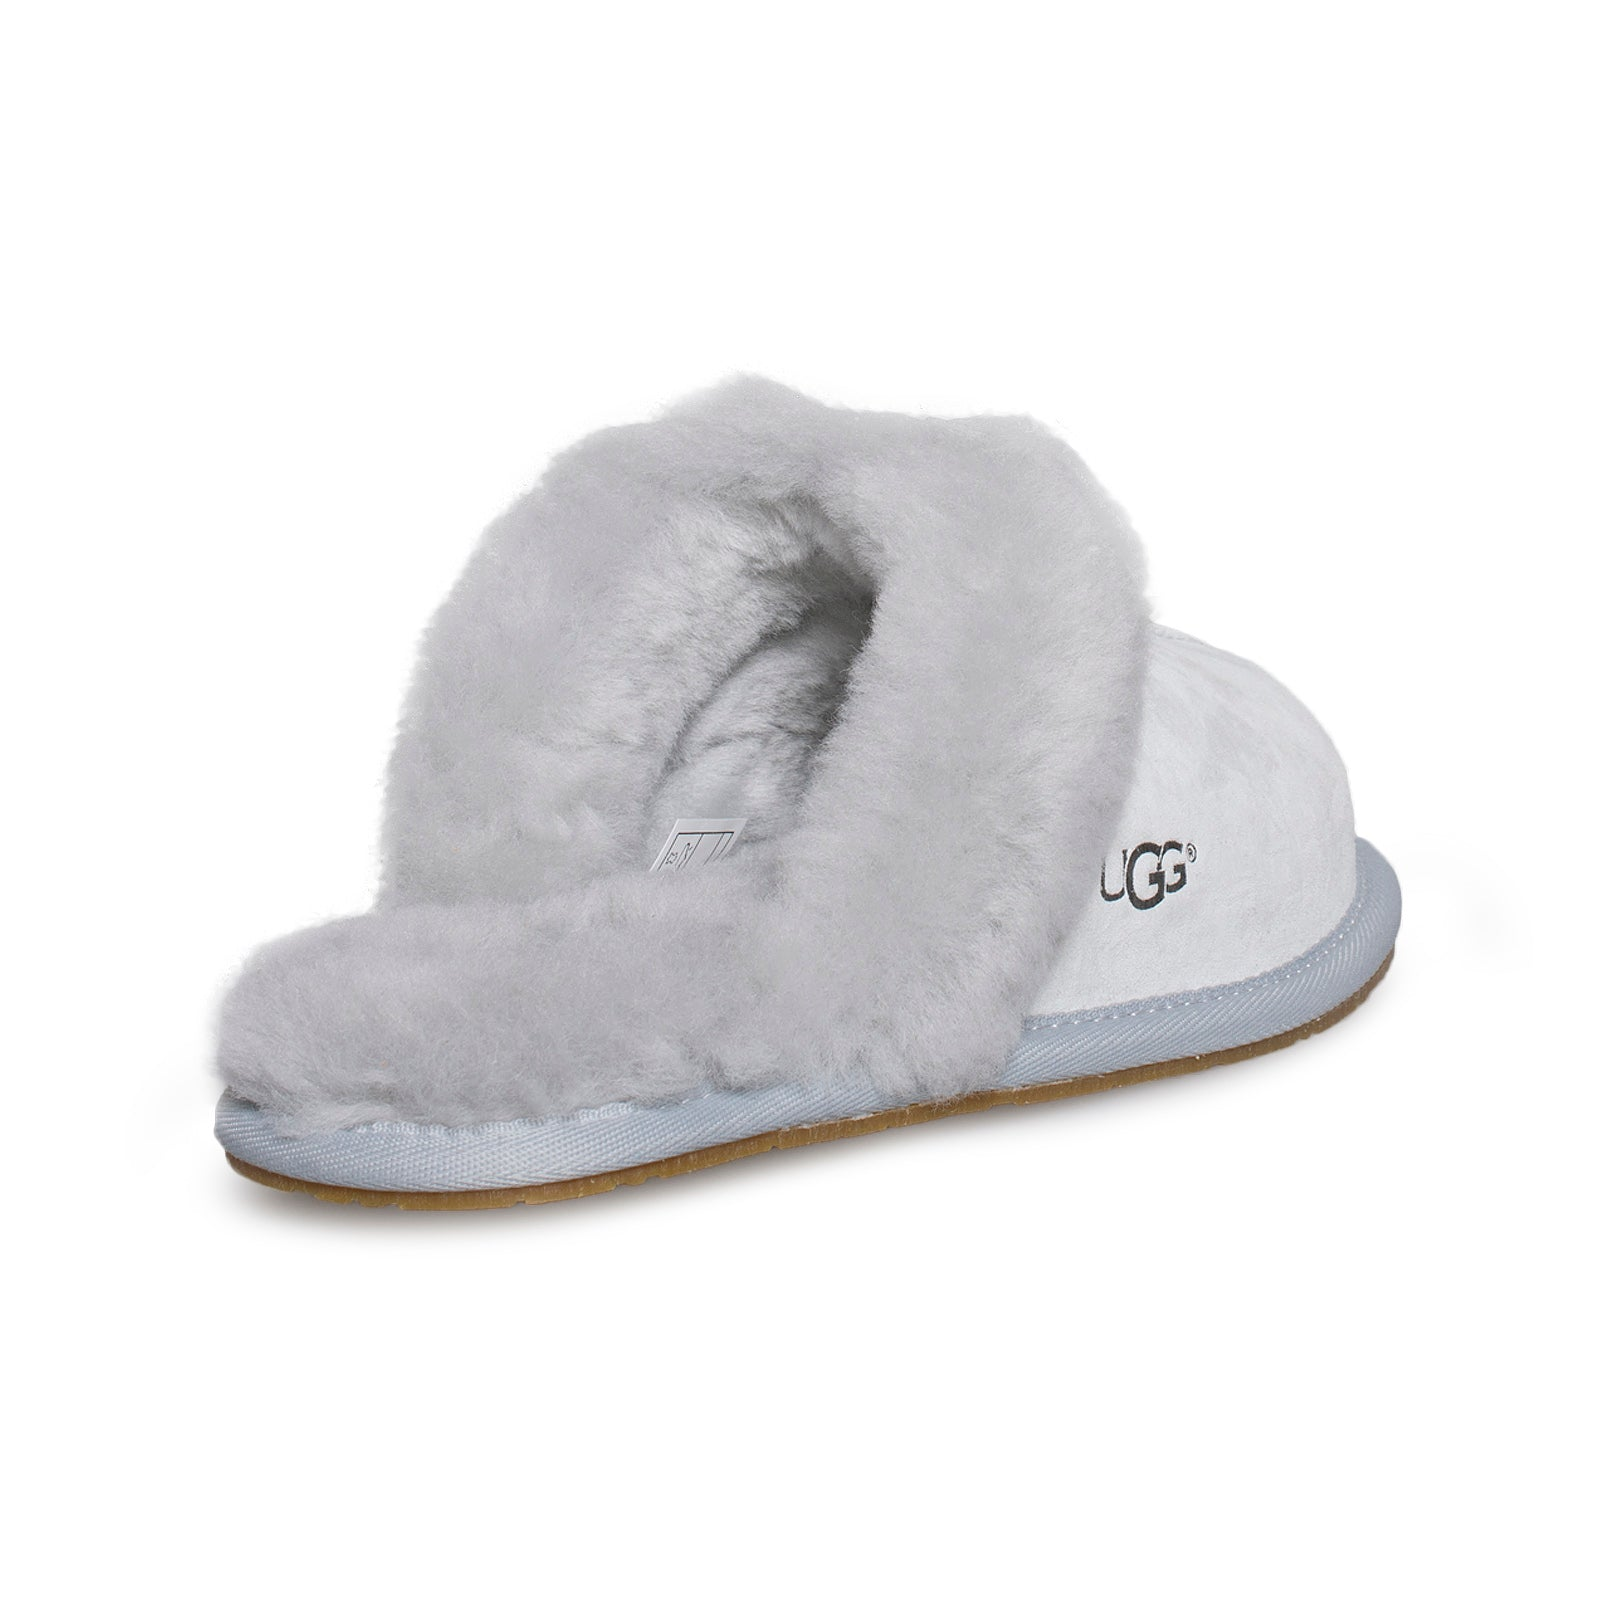 4d004919596 UGG Scuffette II Grey Violet Slippers